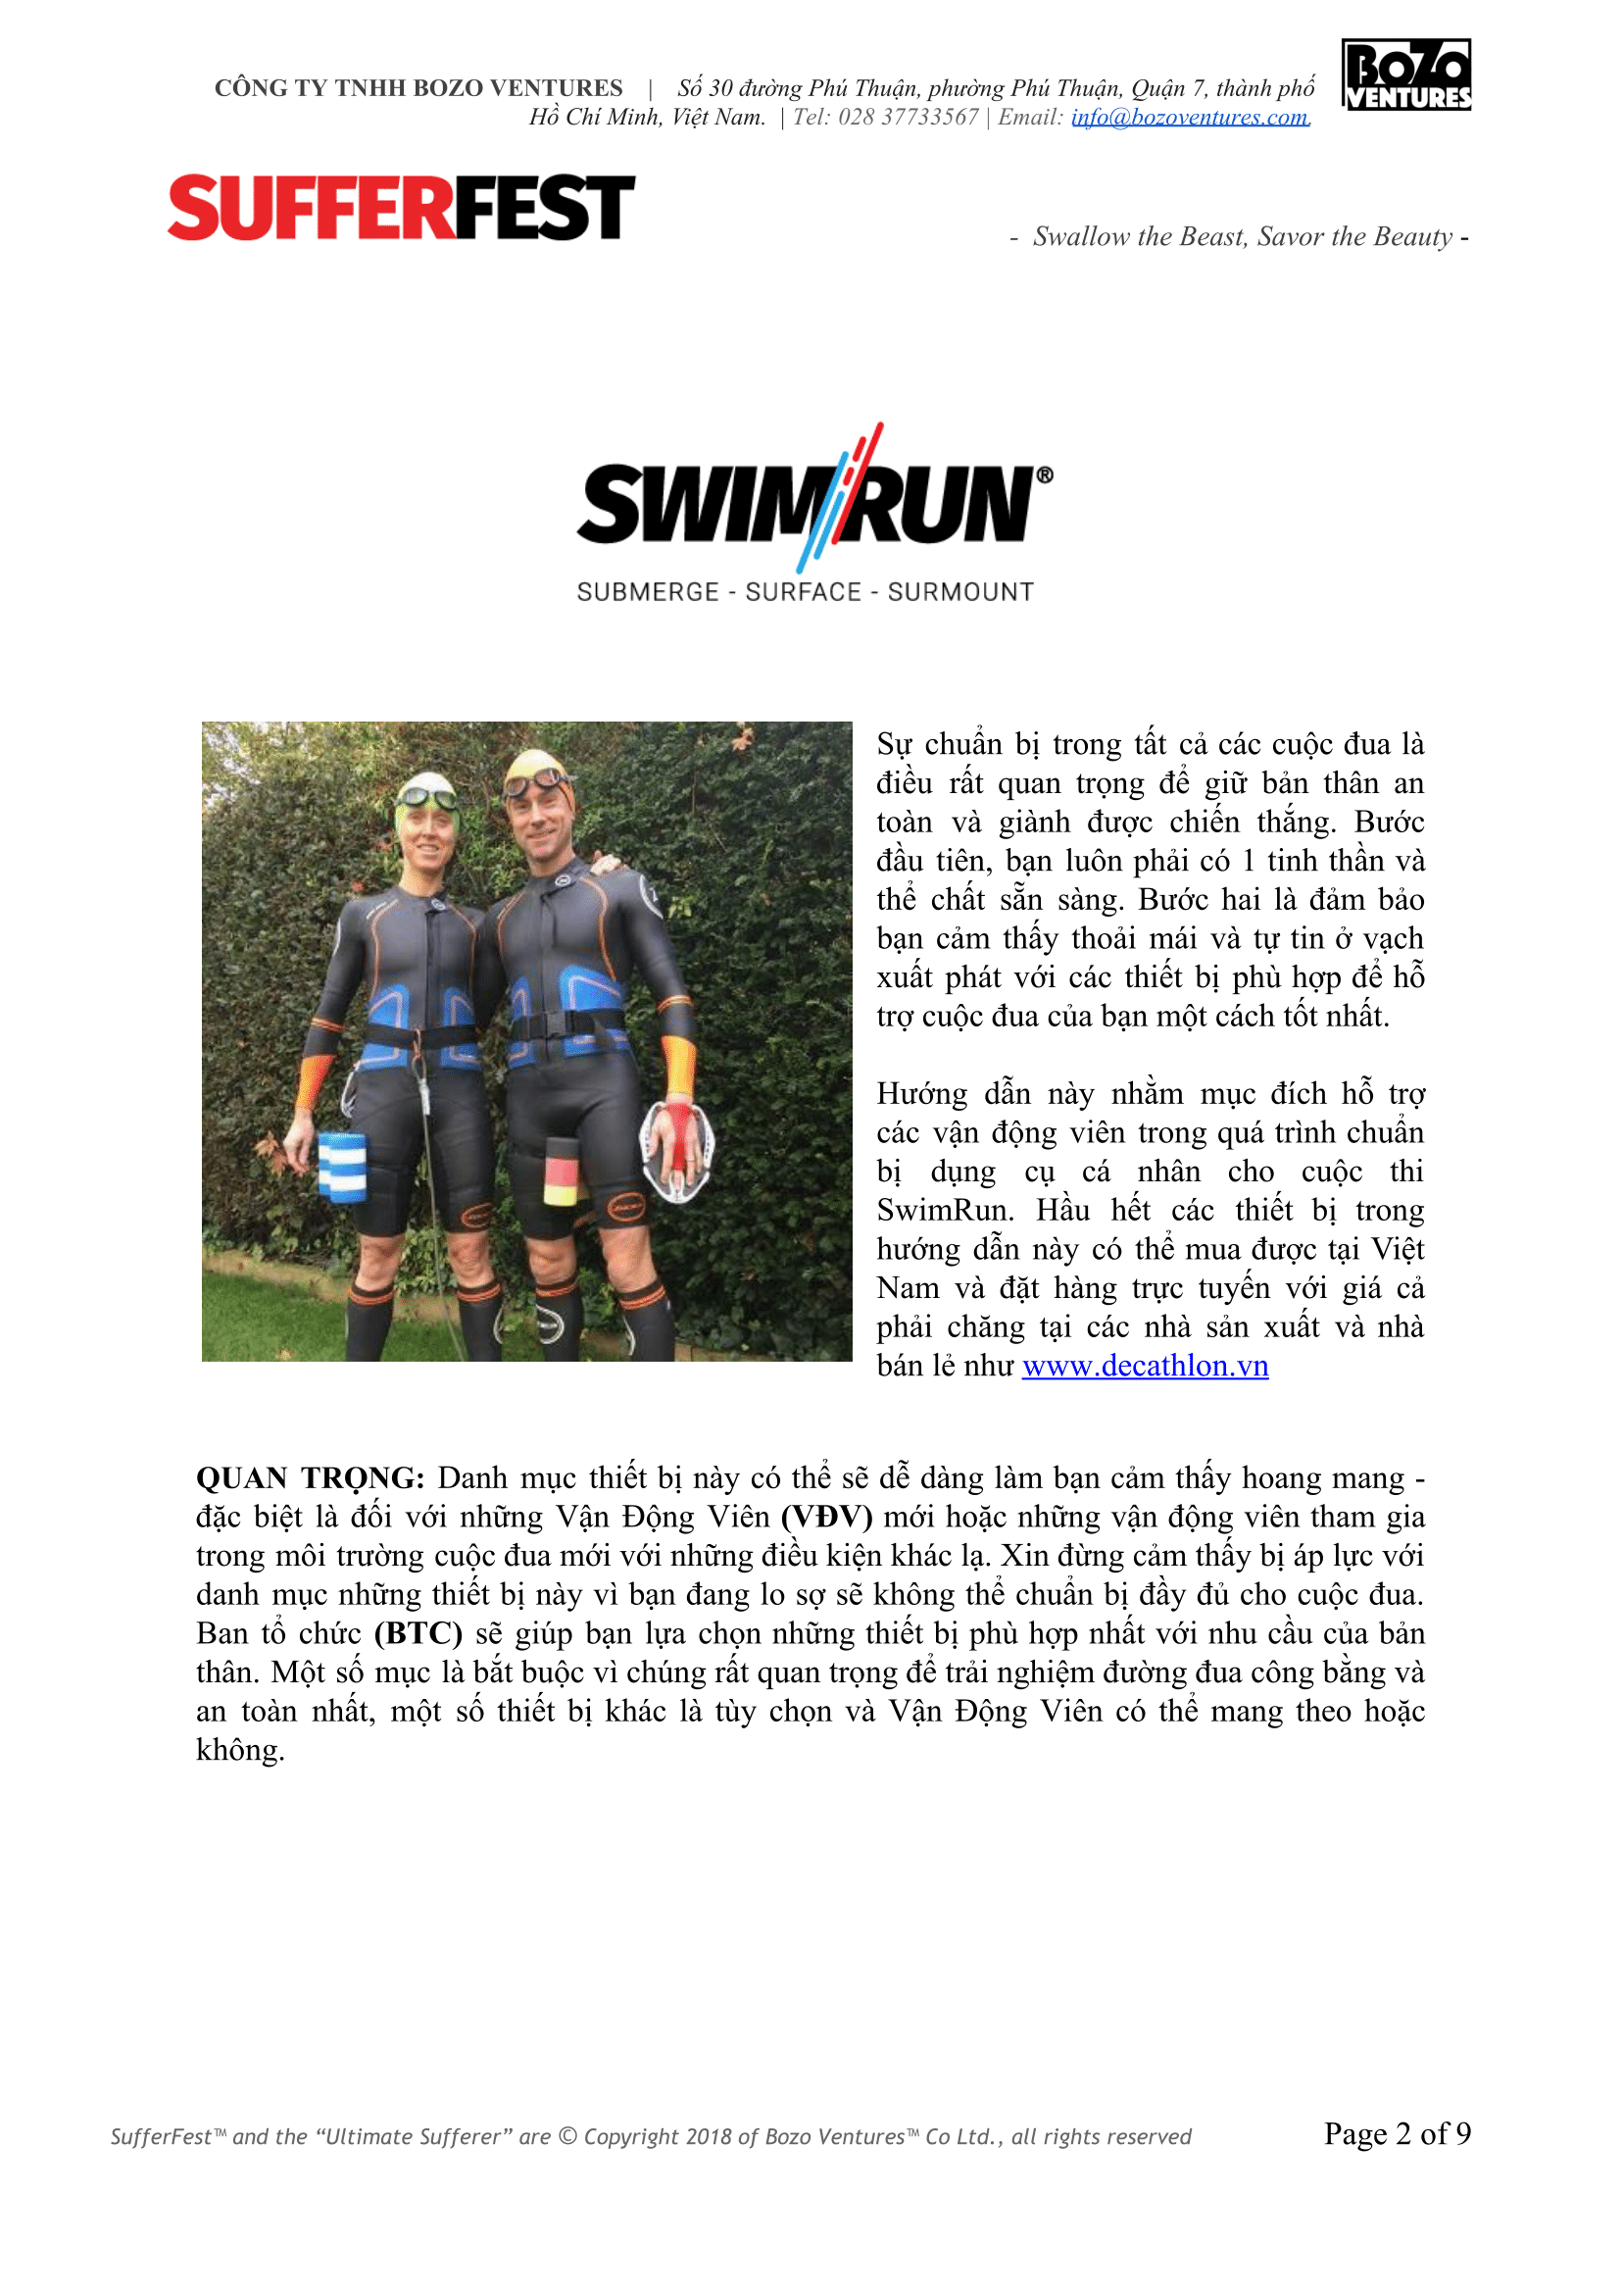 [VN] SufferFest™- SwimRun Gear Guide-2.png